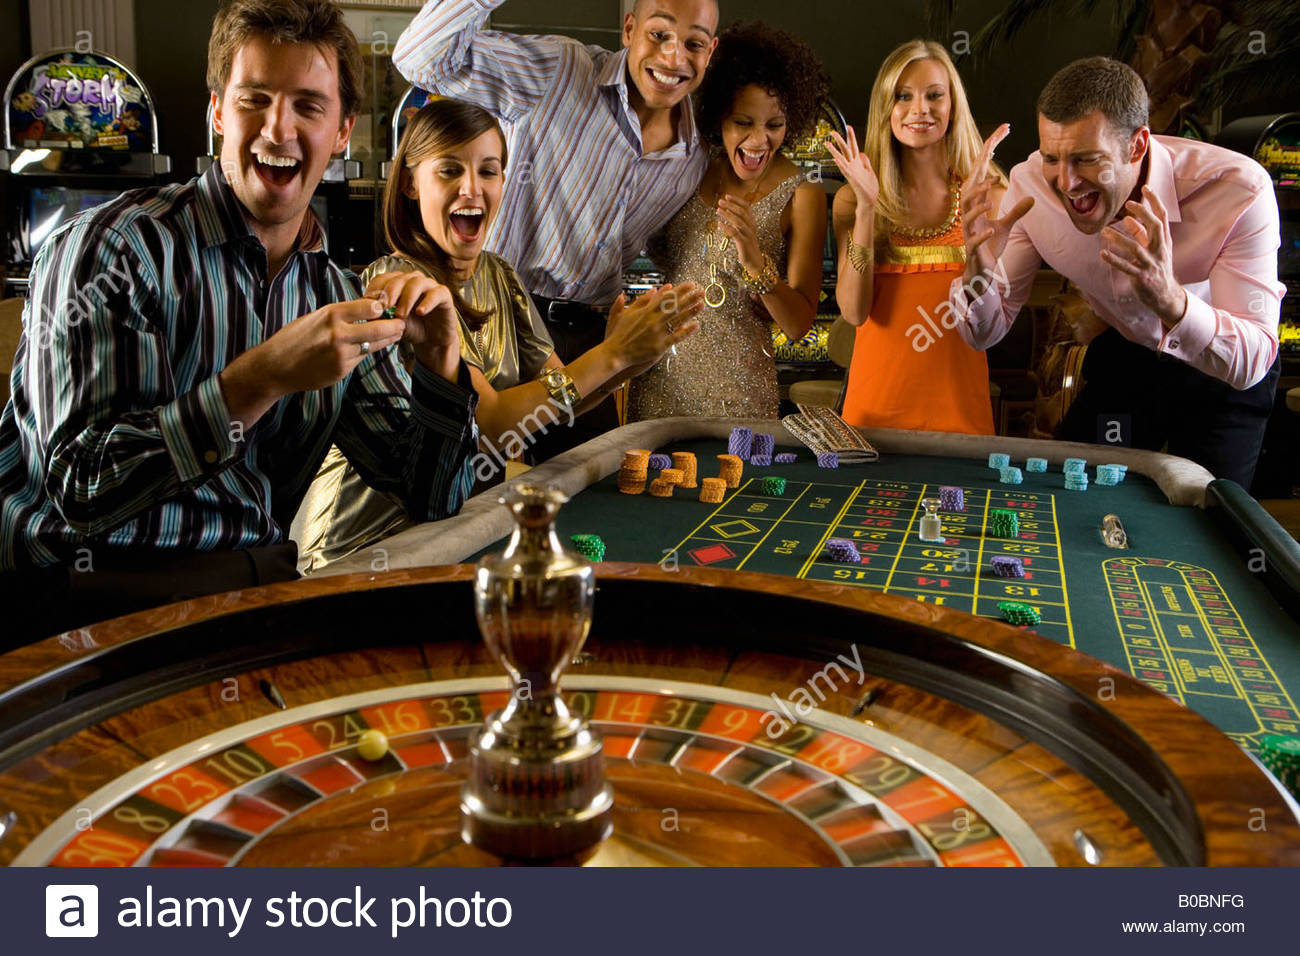 Men and women casino nebraska legal gambling